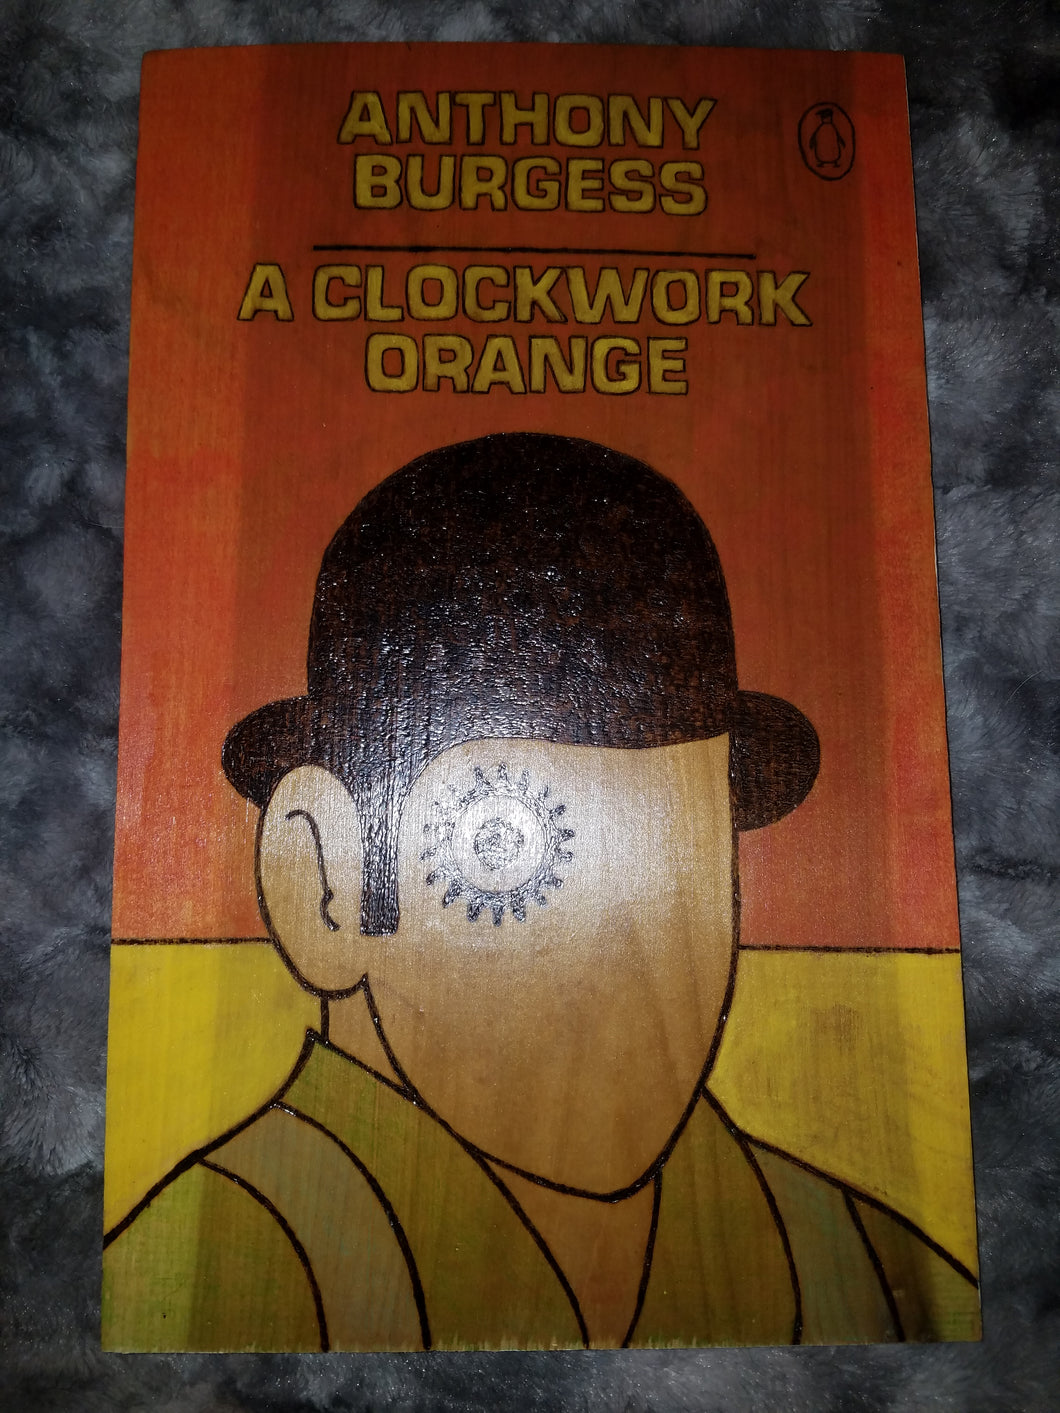 A Clockwork Orange plaque - Odin's Eye Art, Pyrography - woodburning, Odin's Eye Art - Odin's Eye Art